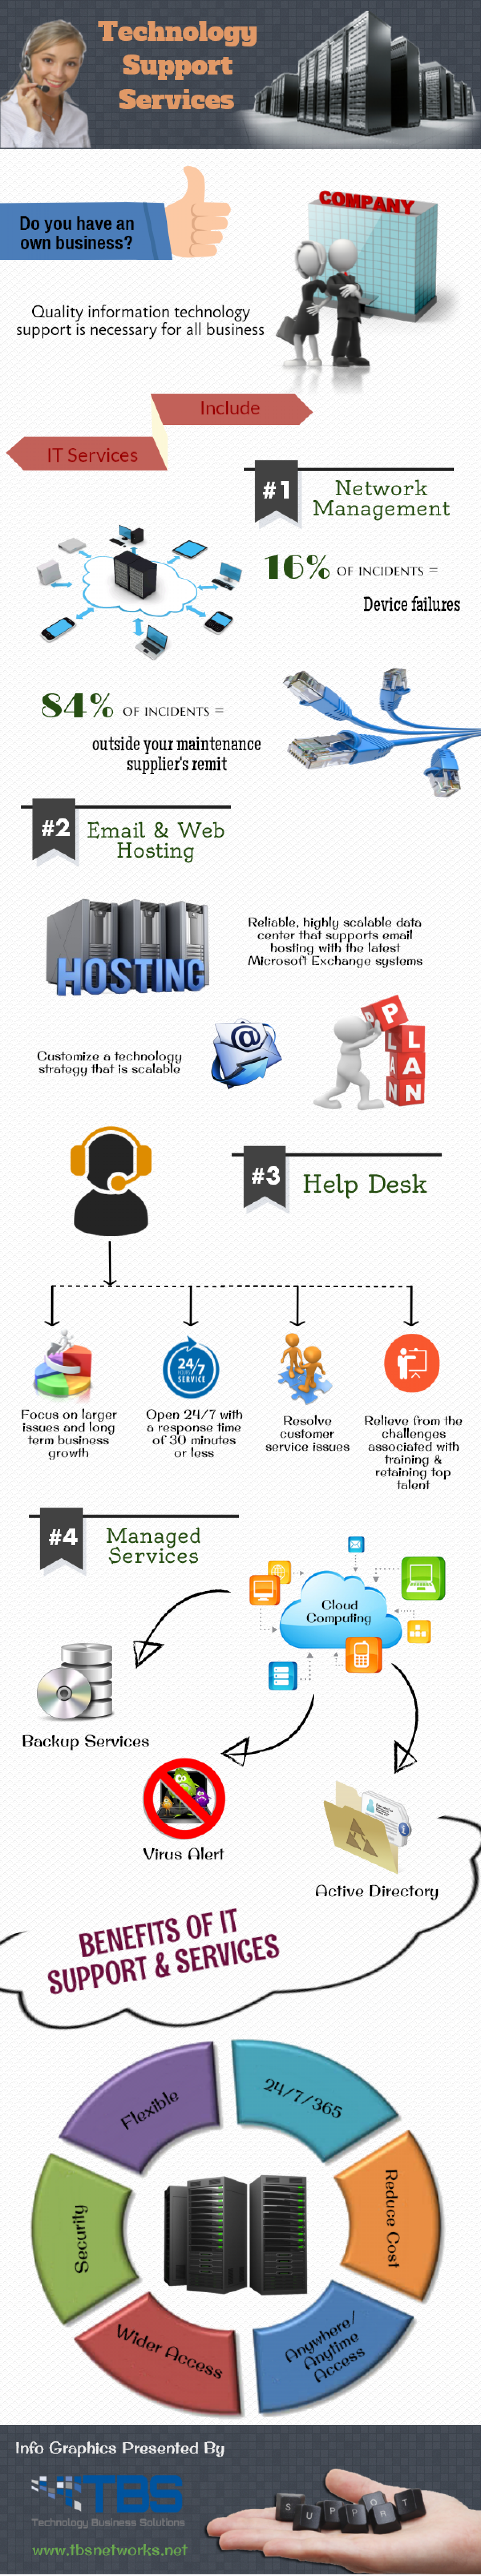 Technology Support Services For Your Business Infographic